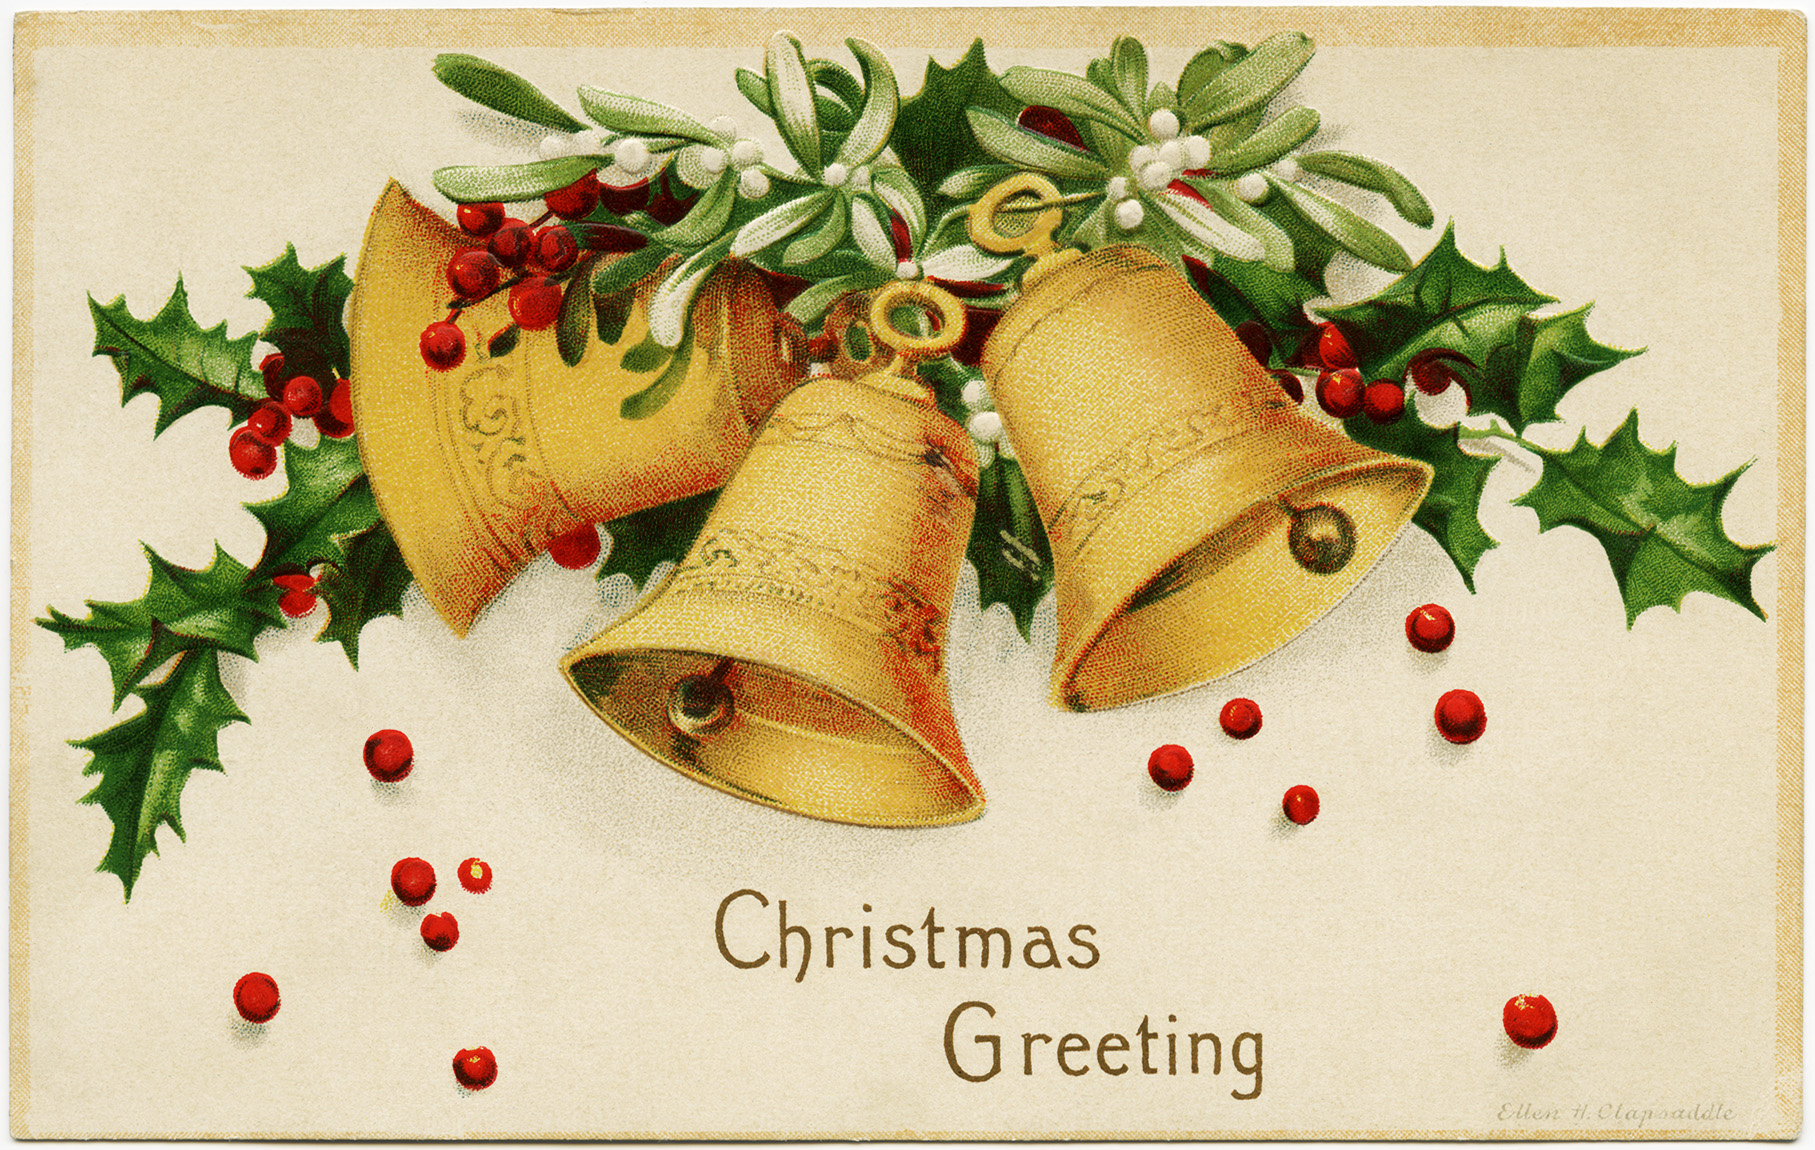 ellen clapsaddle postcard, vintage Christmas postcard, yellow bells holly berries image, christmas bell clip art, free vintage holiday printable